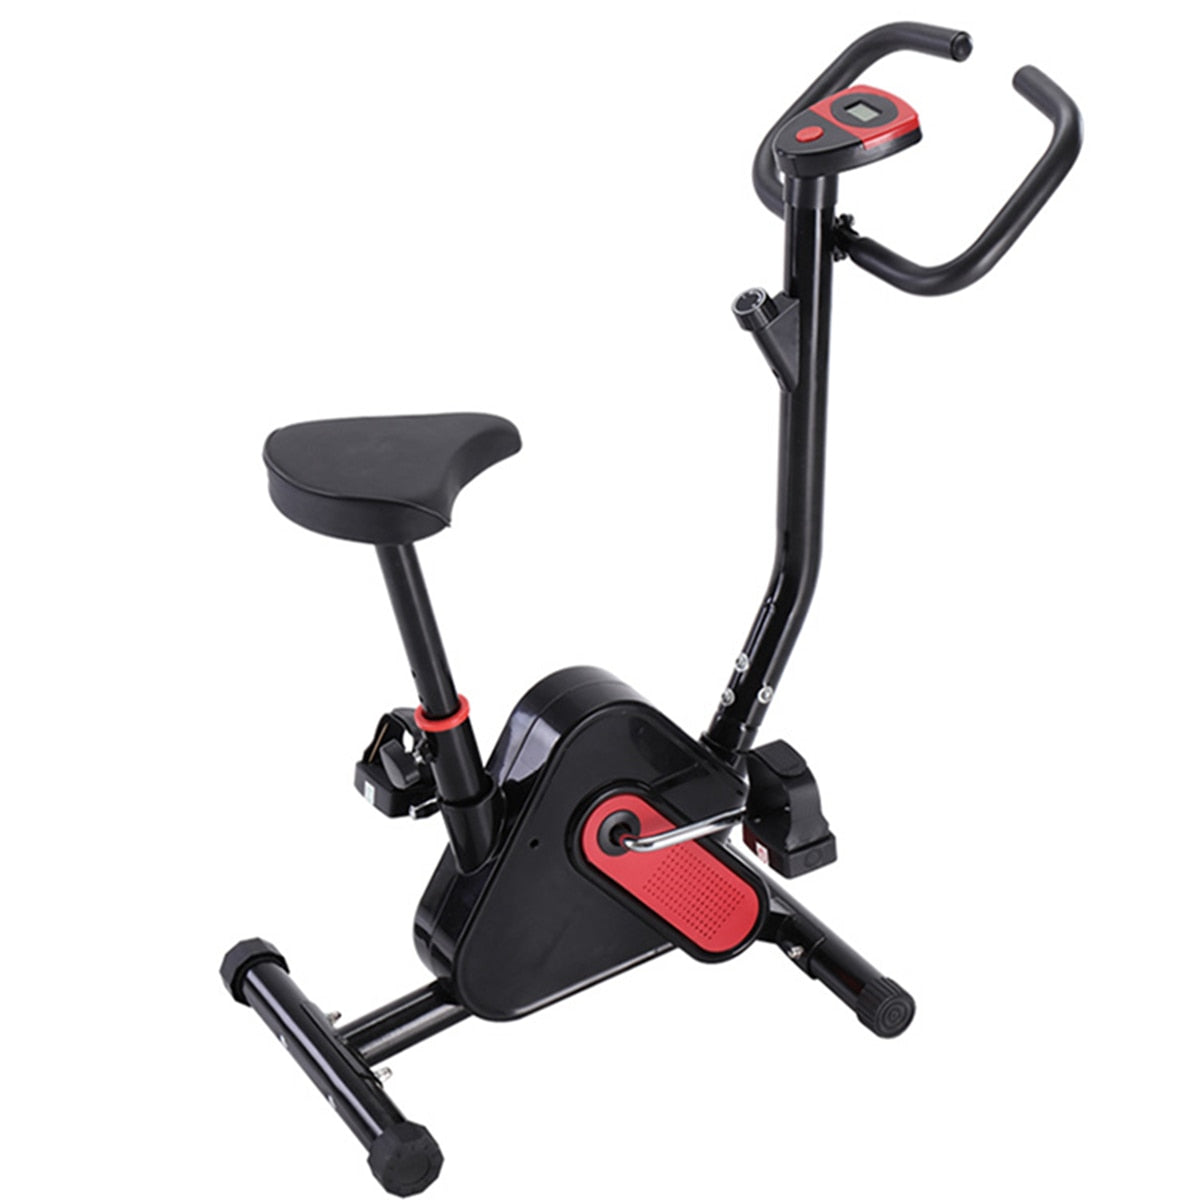 Aerobic Exercise Bike Cycling Cardio Trainer